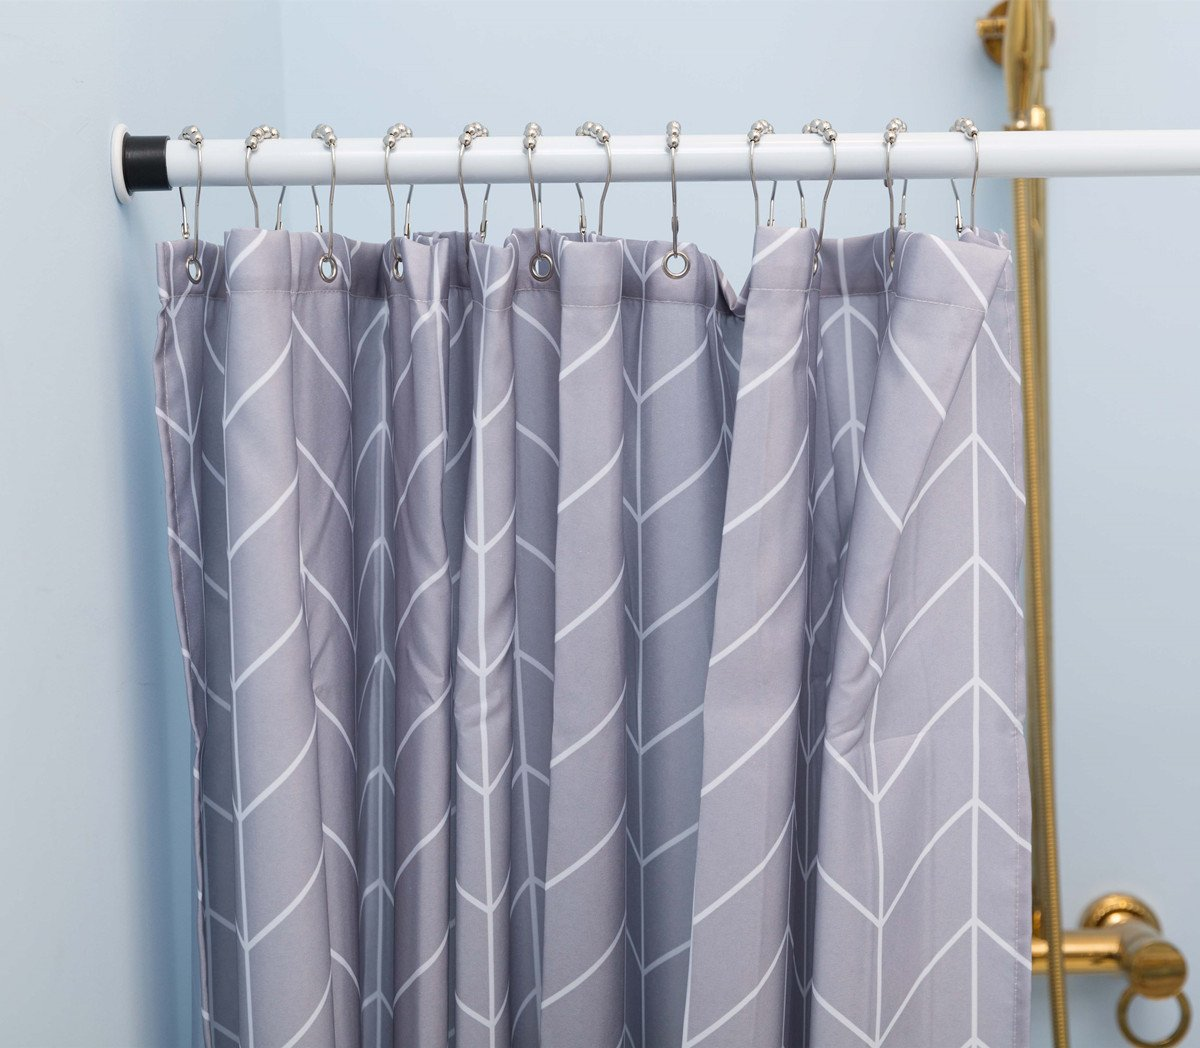 Amazon.com: ALLZONE Tension Shower Curtain Rod,Medium, 42-81 Inches, Never  Fall off, Rust Free, Steel: Home & Kitchen